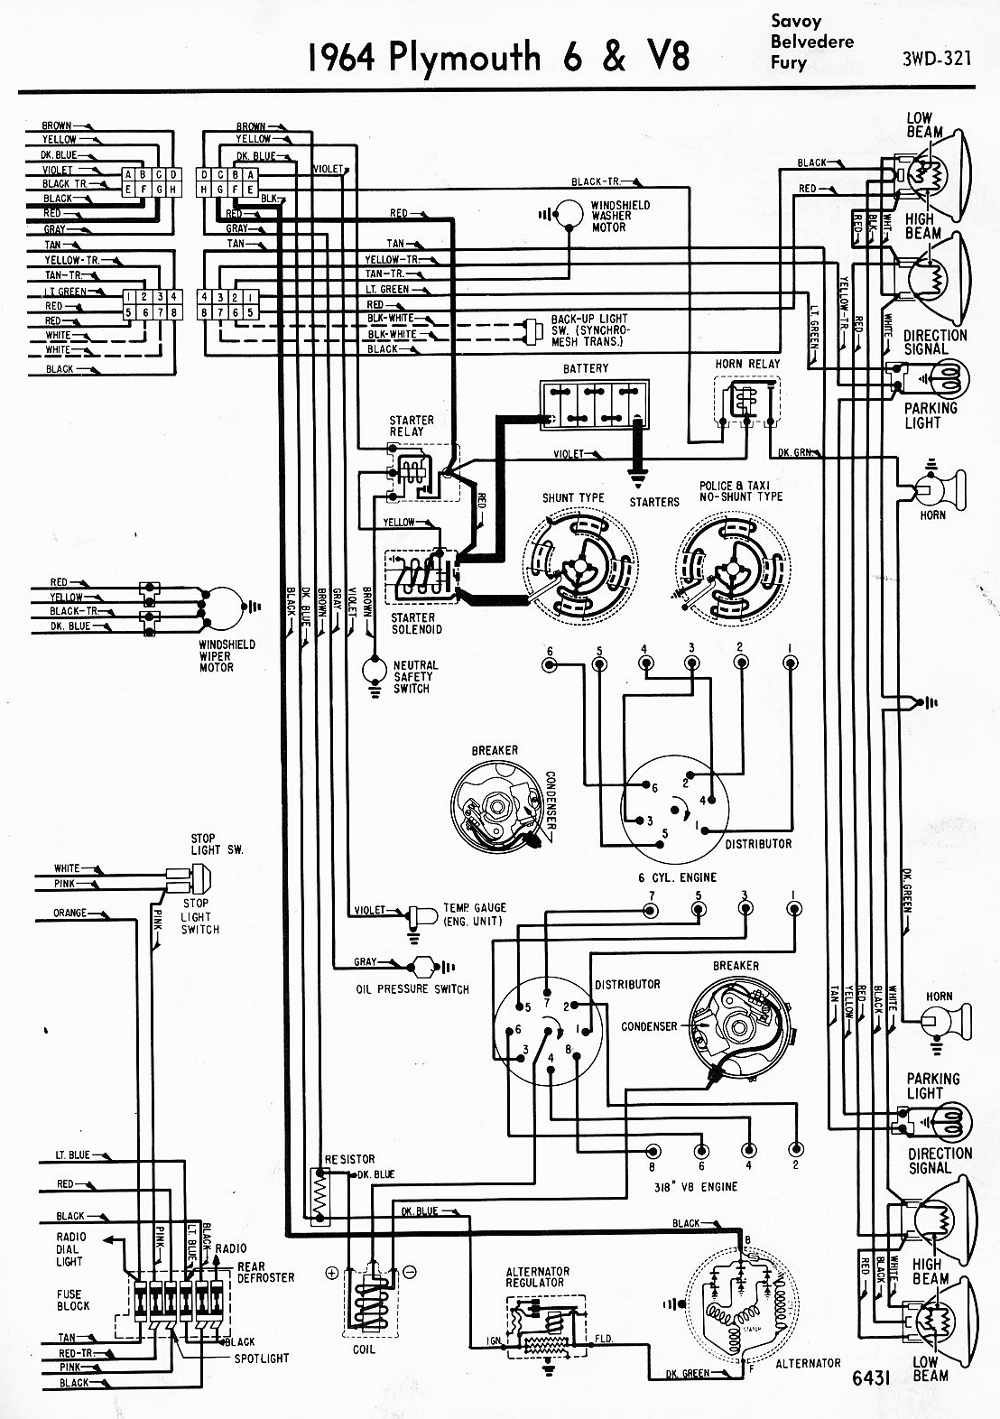 hight resolution of 1974 plymouth fury wiring diagram wiring library 1965 barracuda wiring diagram 1965 plymouth belvedere wiring diagram